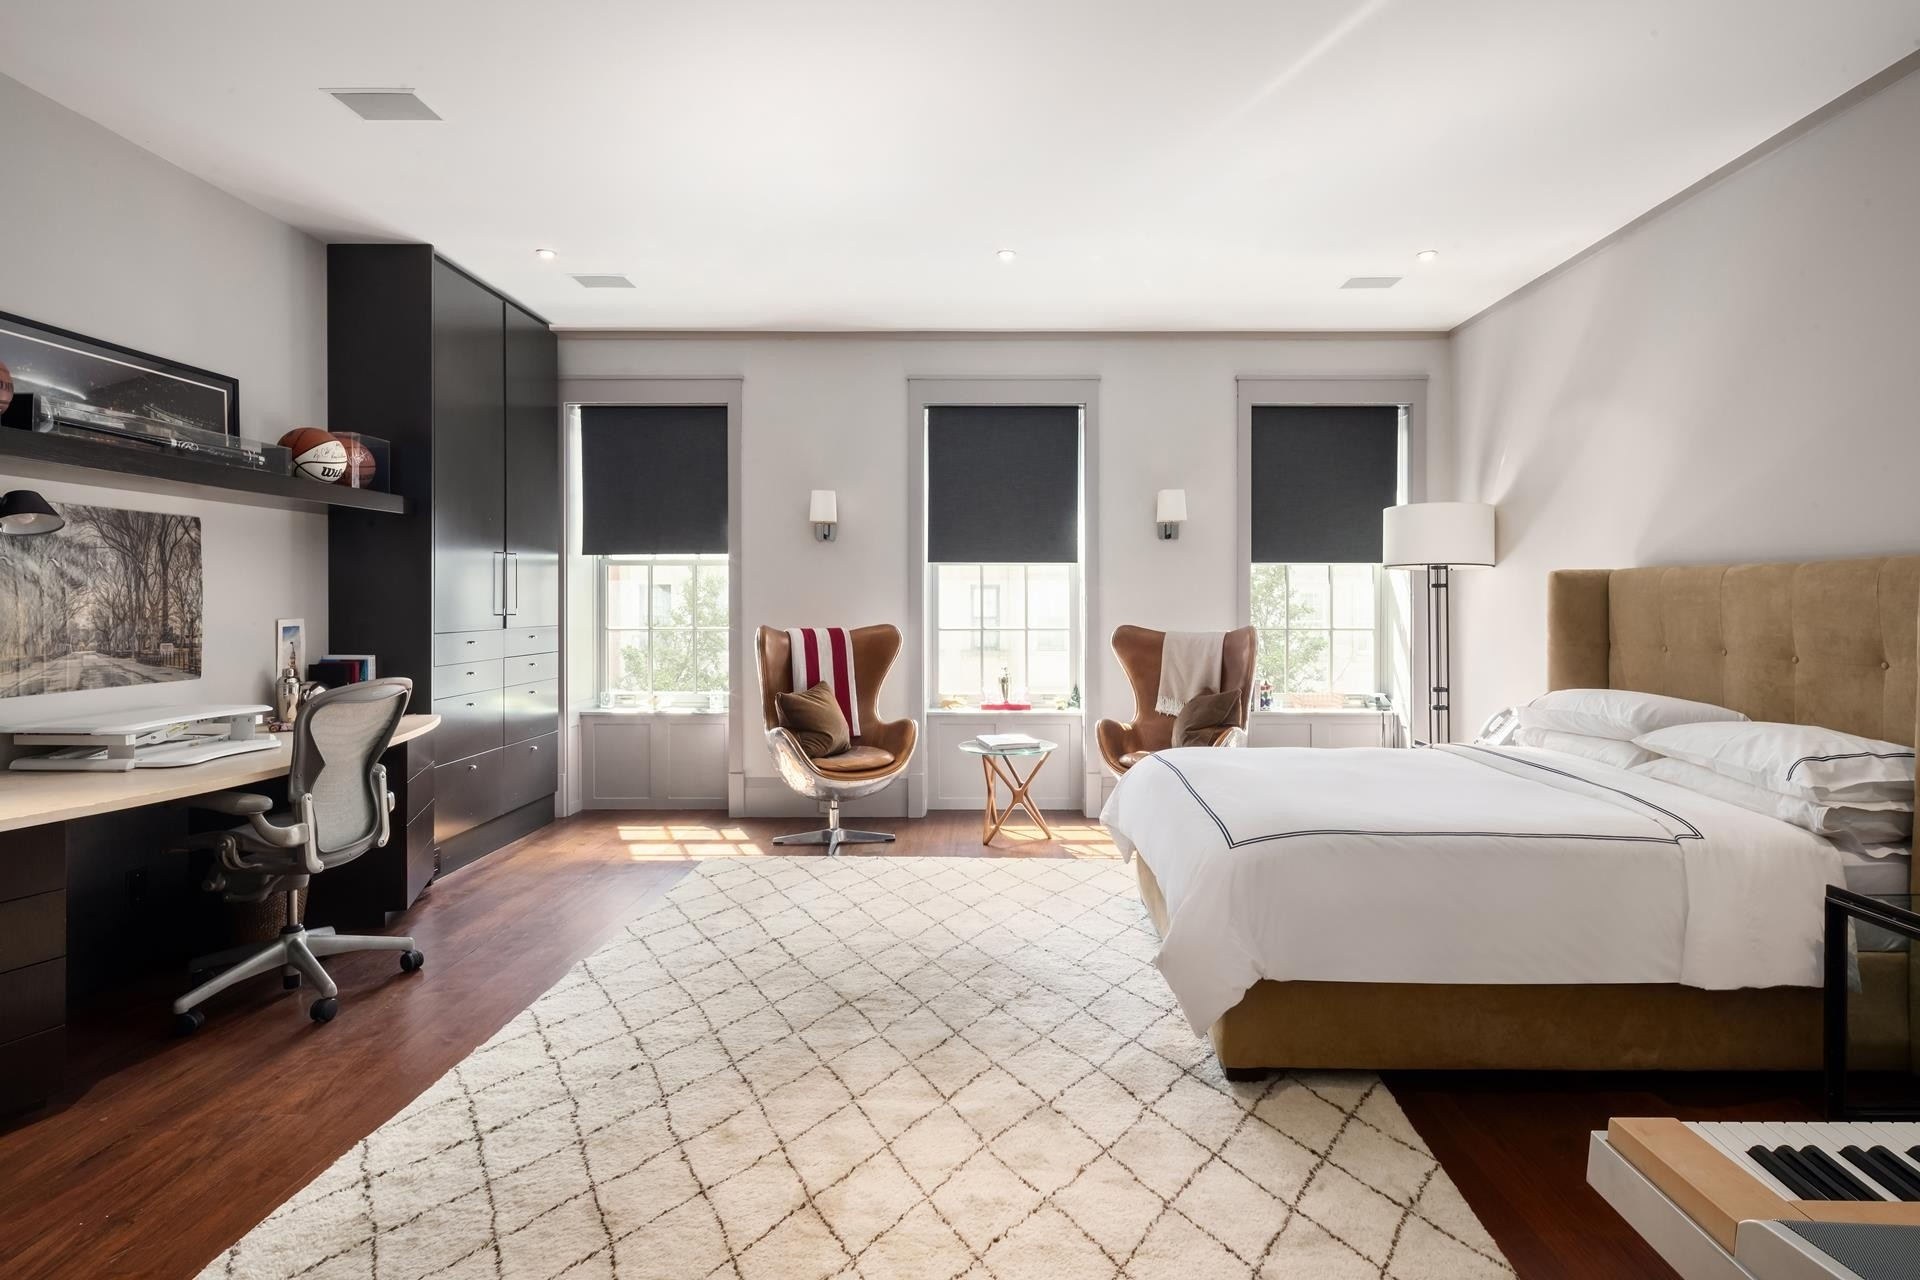 19. Single Family Townhouse for Sale at 159 E 61ST ST , TOWNHOUSE Lenox Hill, New York, NY 10065